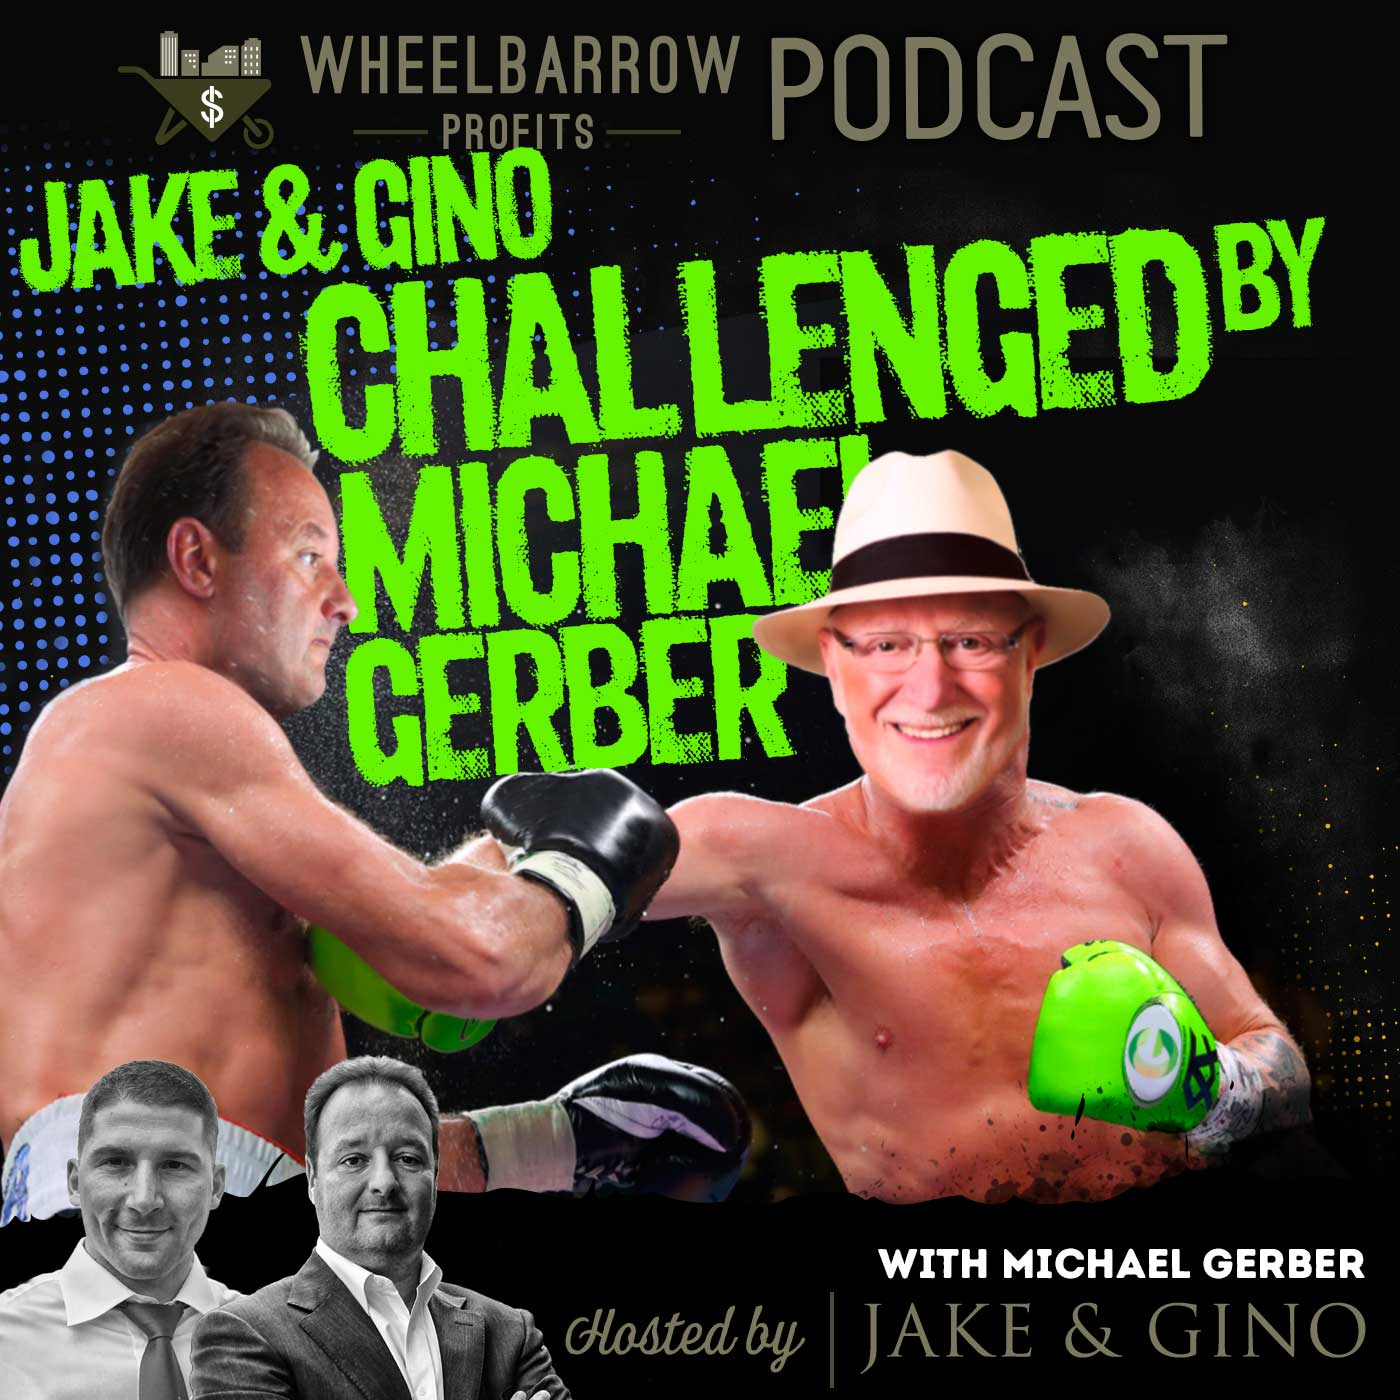 Jake & Gino get challenged by Michael Gerber